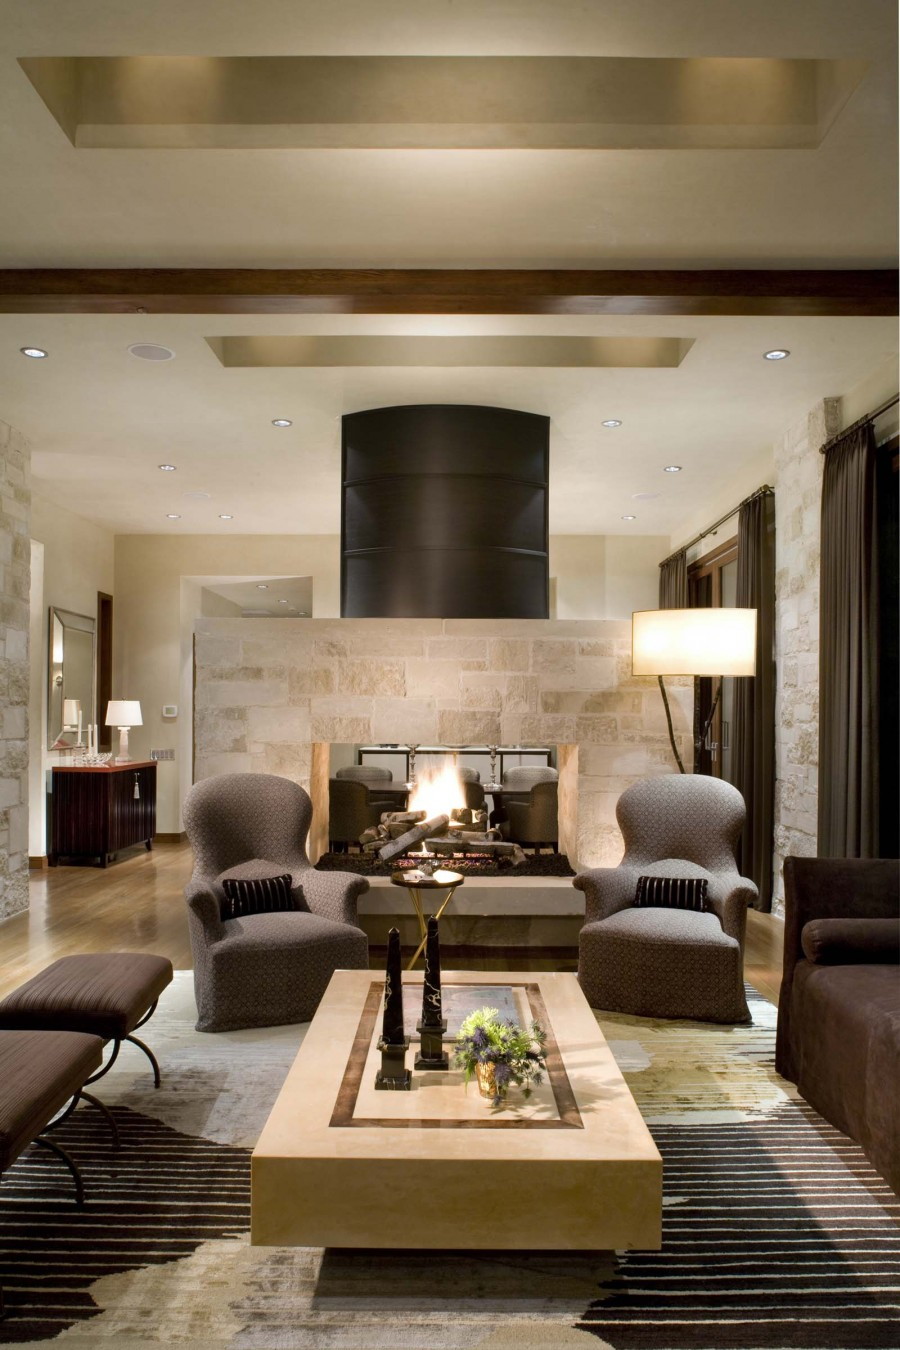 16 fabulous earth tones living room designs decoholic for Interior fireplaces designs